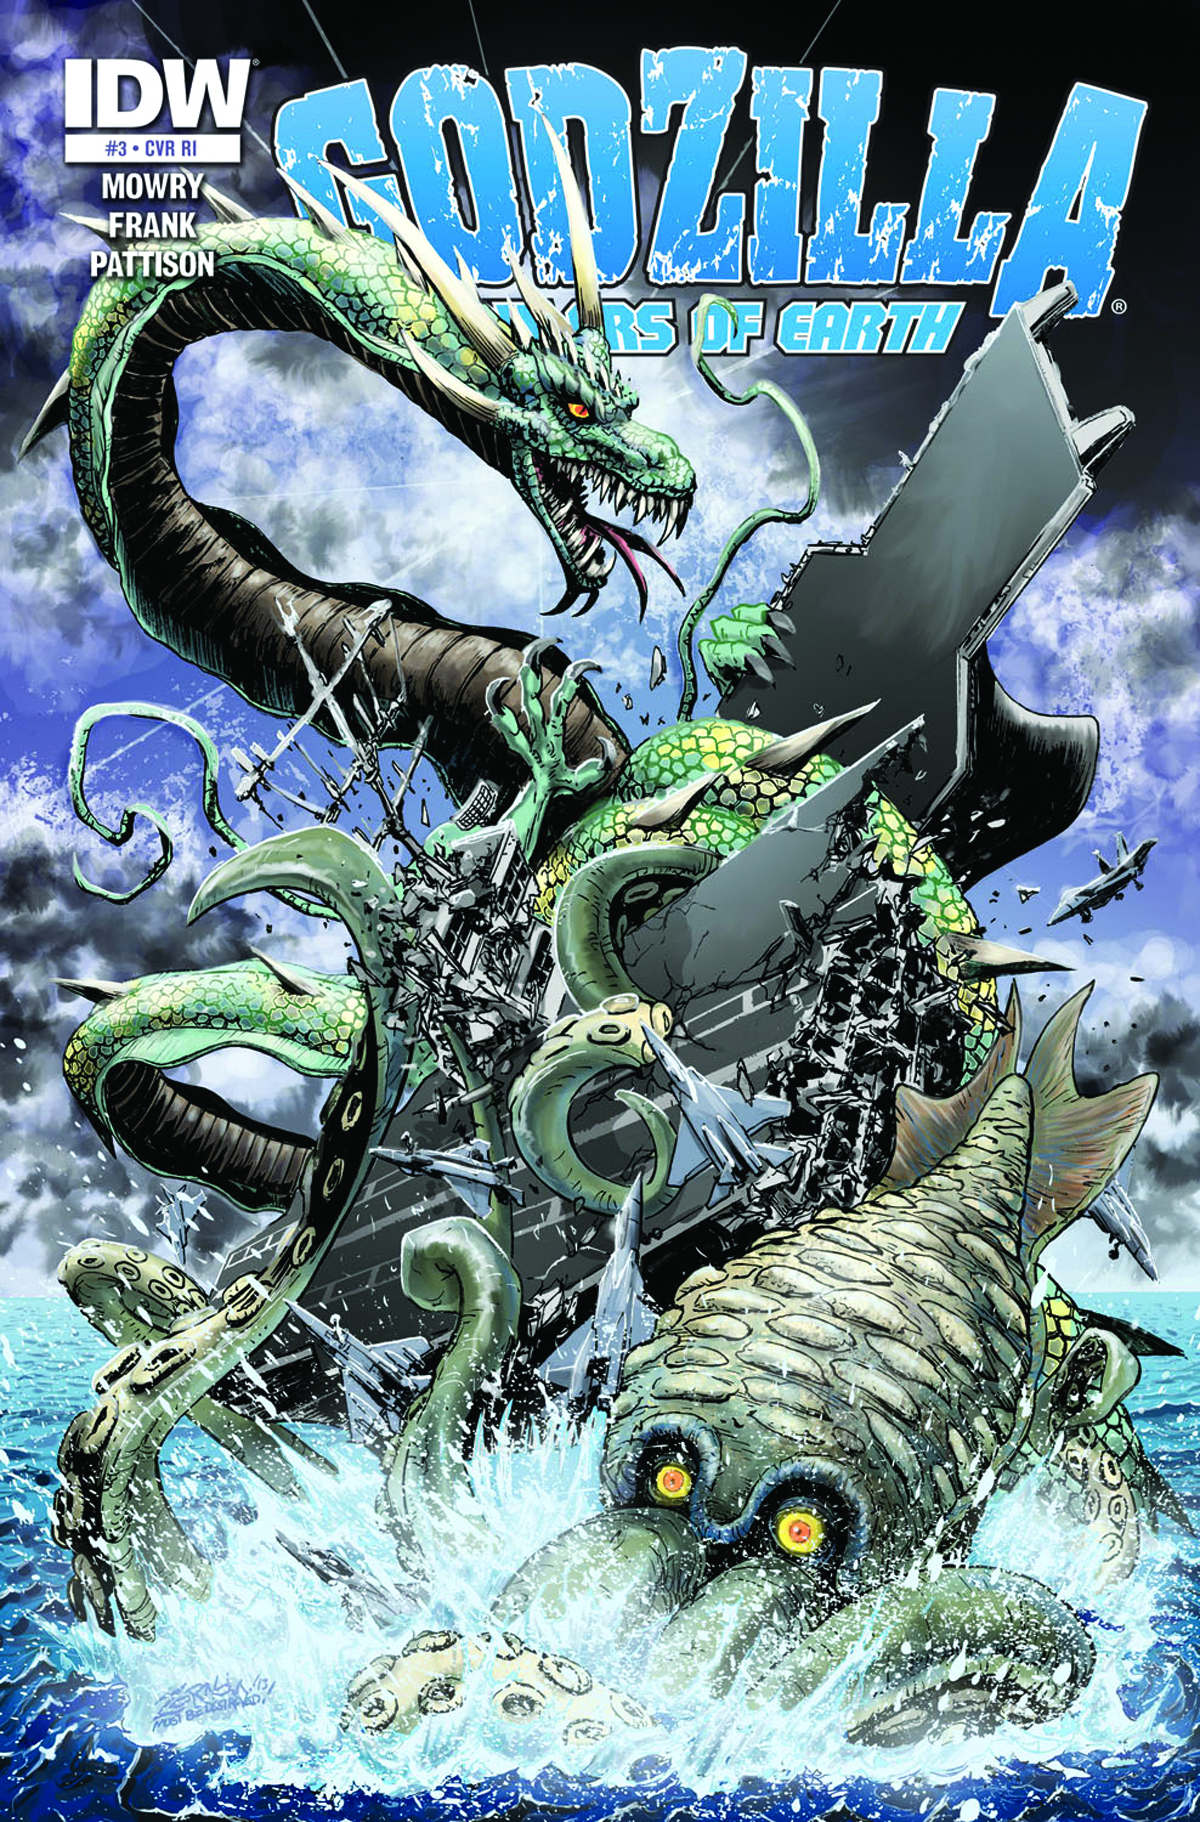 GODZILLA RULERS OF THE EARTH #3